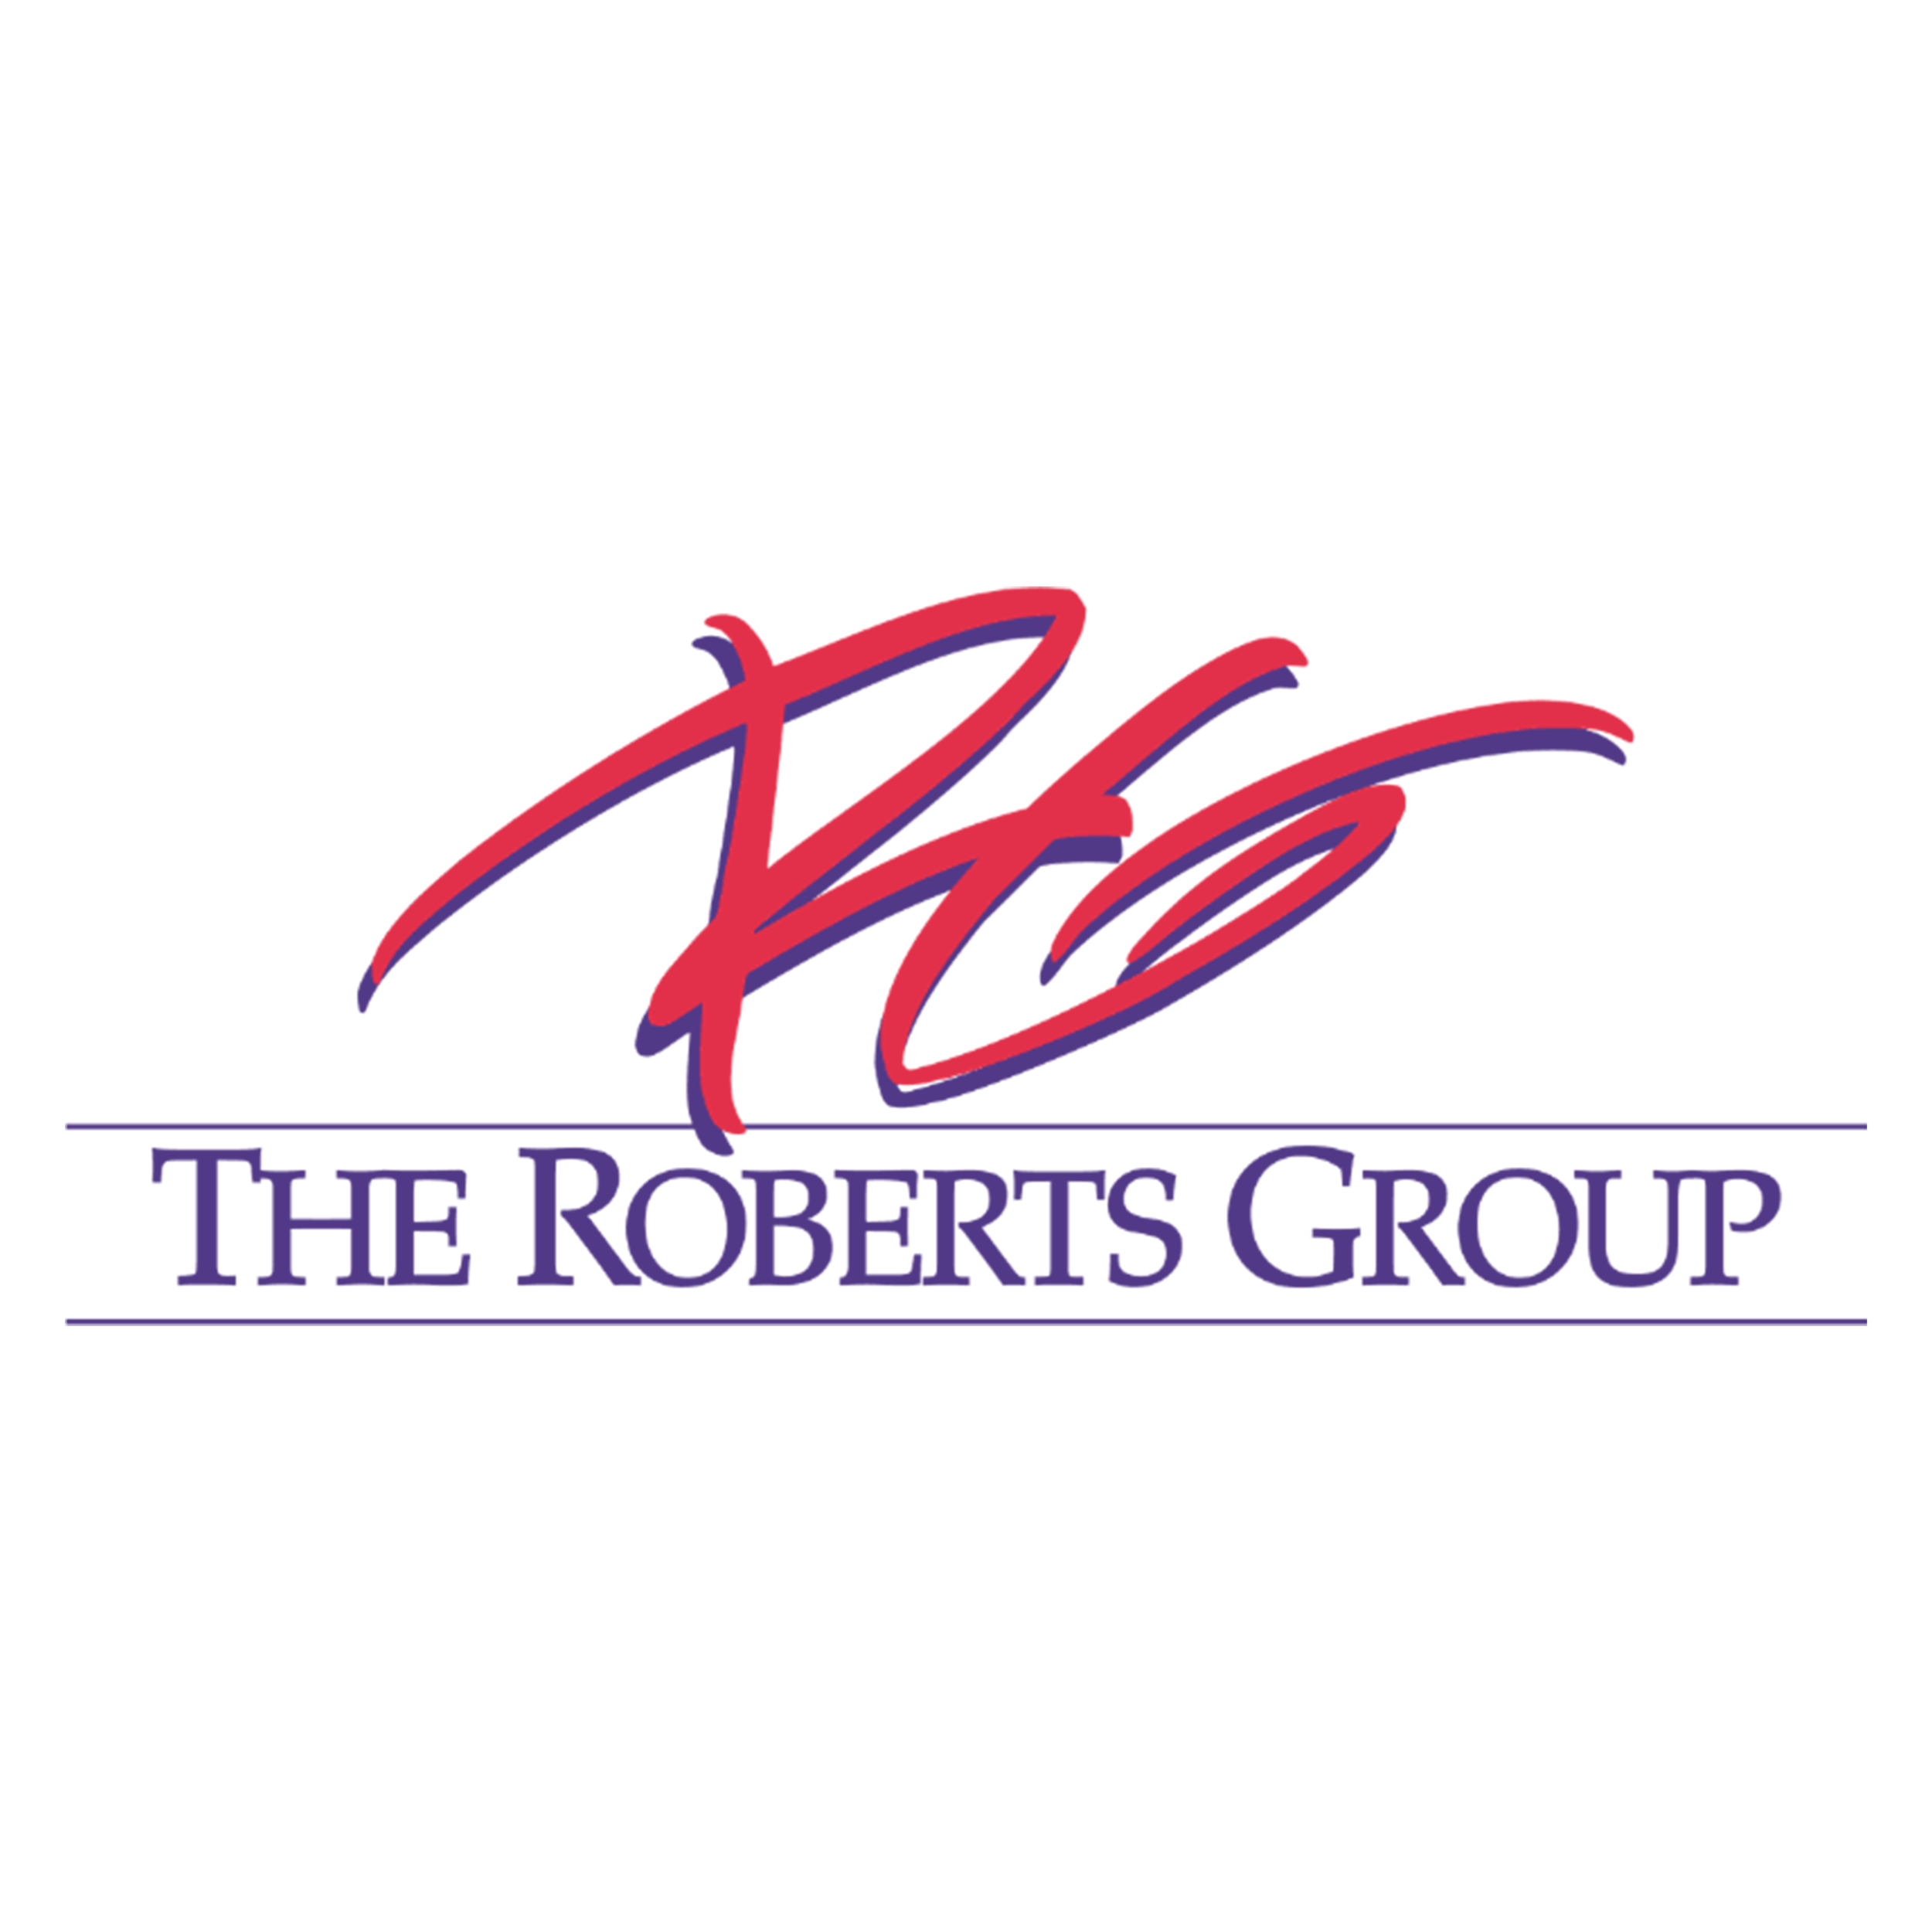 Robert's Group